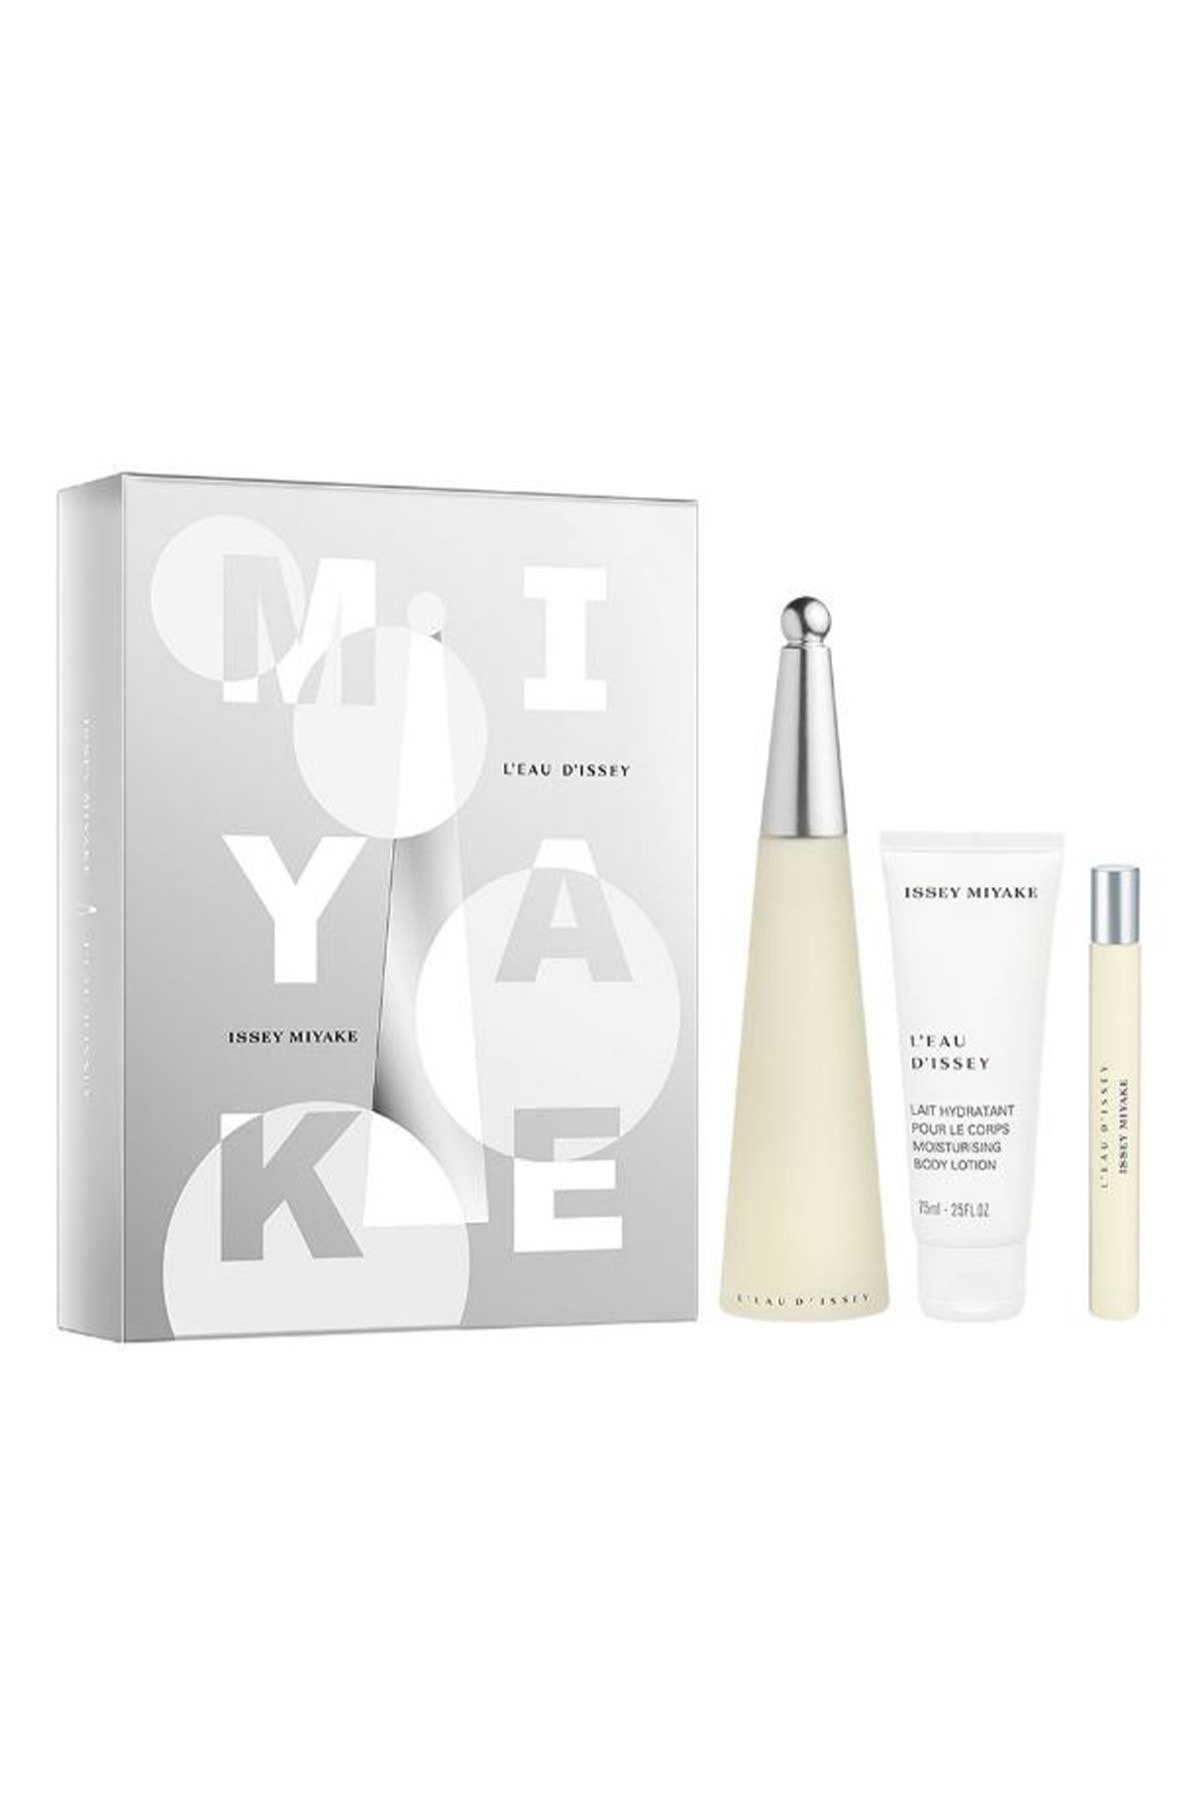 Issey Miyake L'Eau D'Issey Edt 100 ml + Body Lotion 75 ml + Edt 10 ml 3423478973251